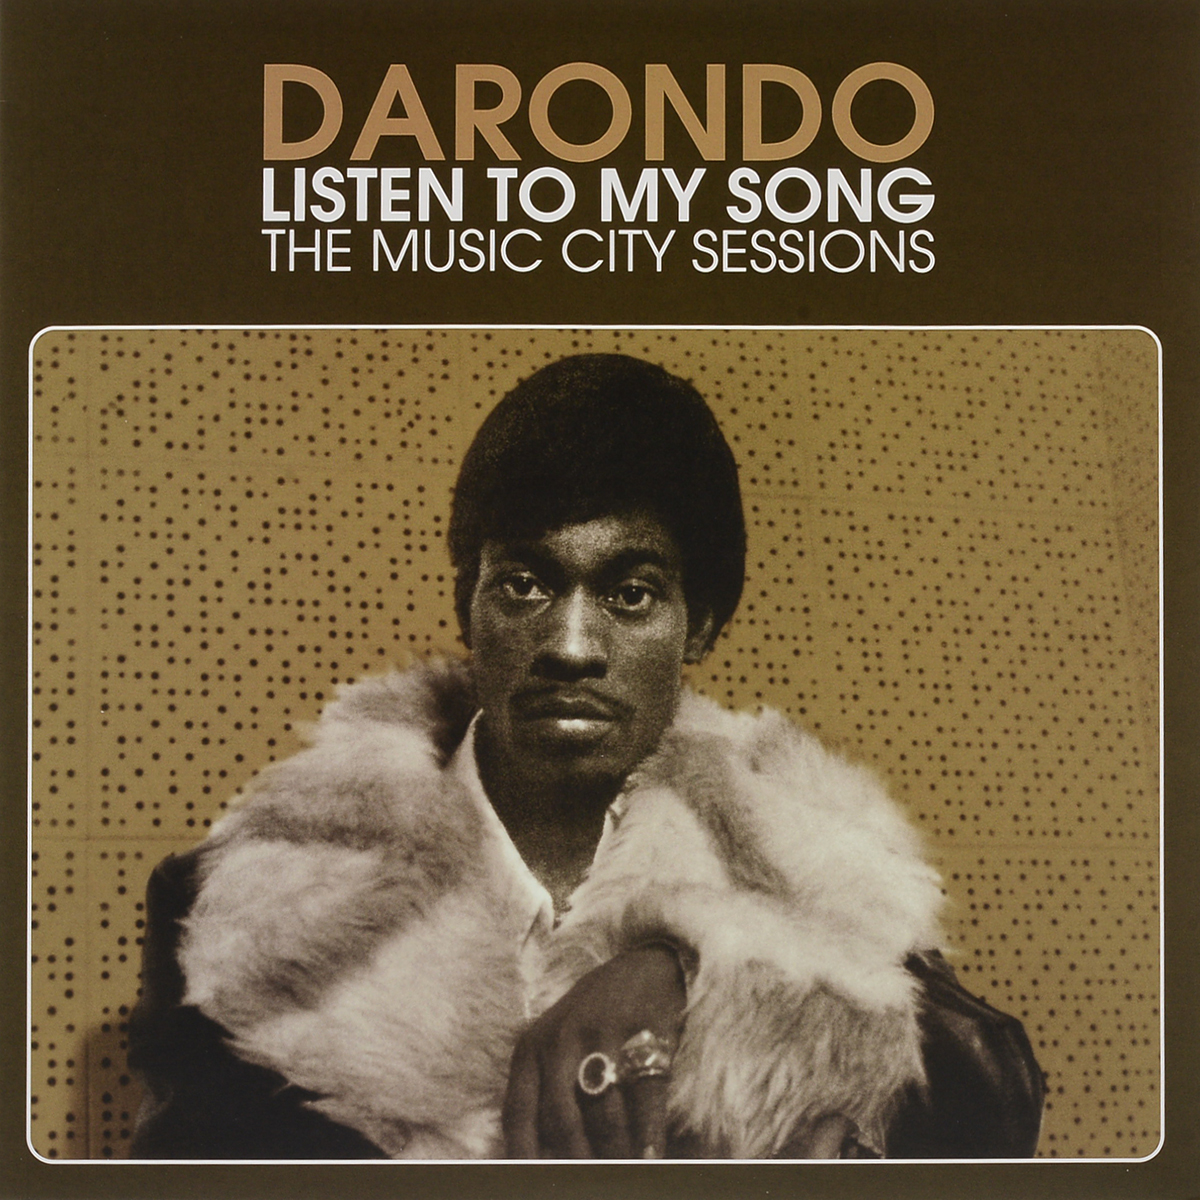 Darondo Darondo - Listen To My Song. The Music City Sessions (LP)